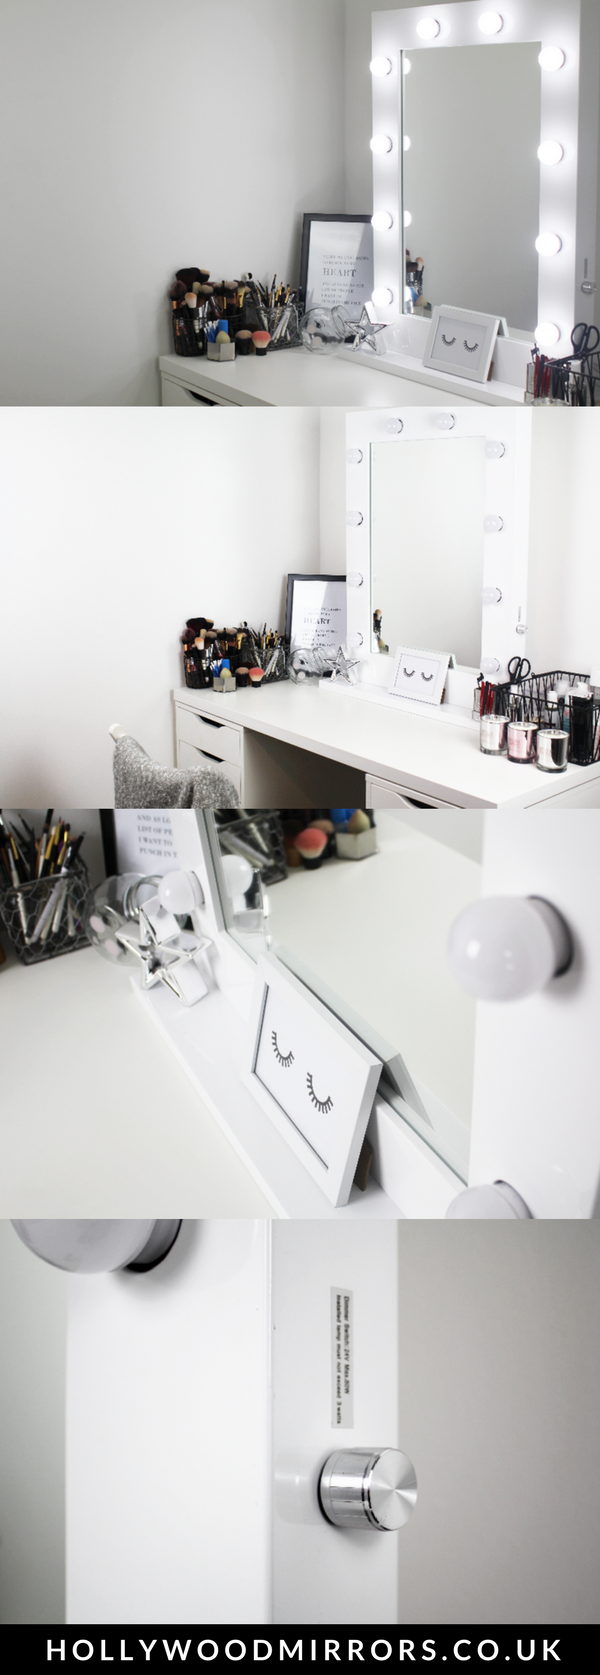 Diy vanity mirror with lights for bathroom and makeup station mozeypictures Image collections